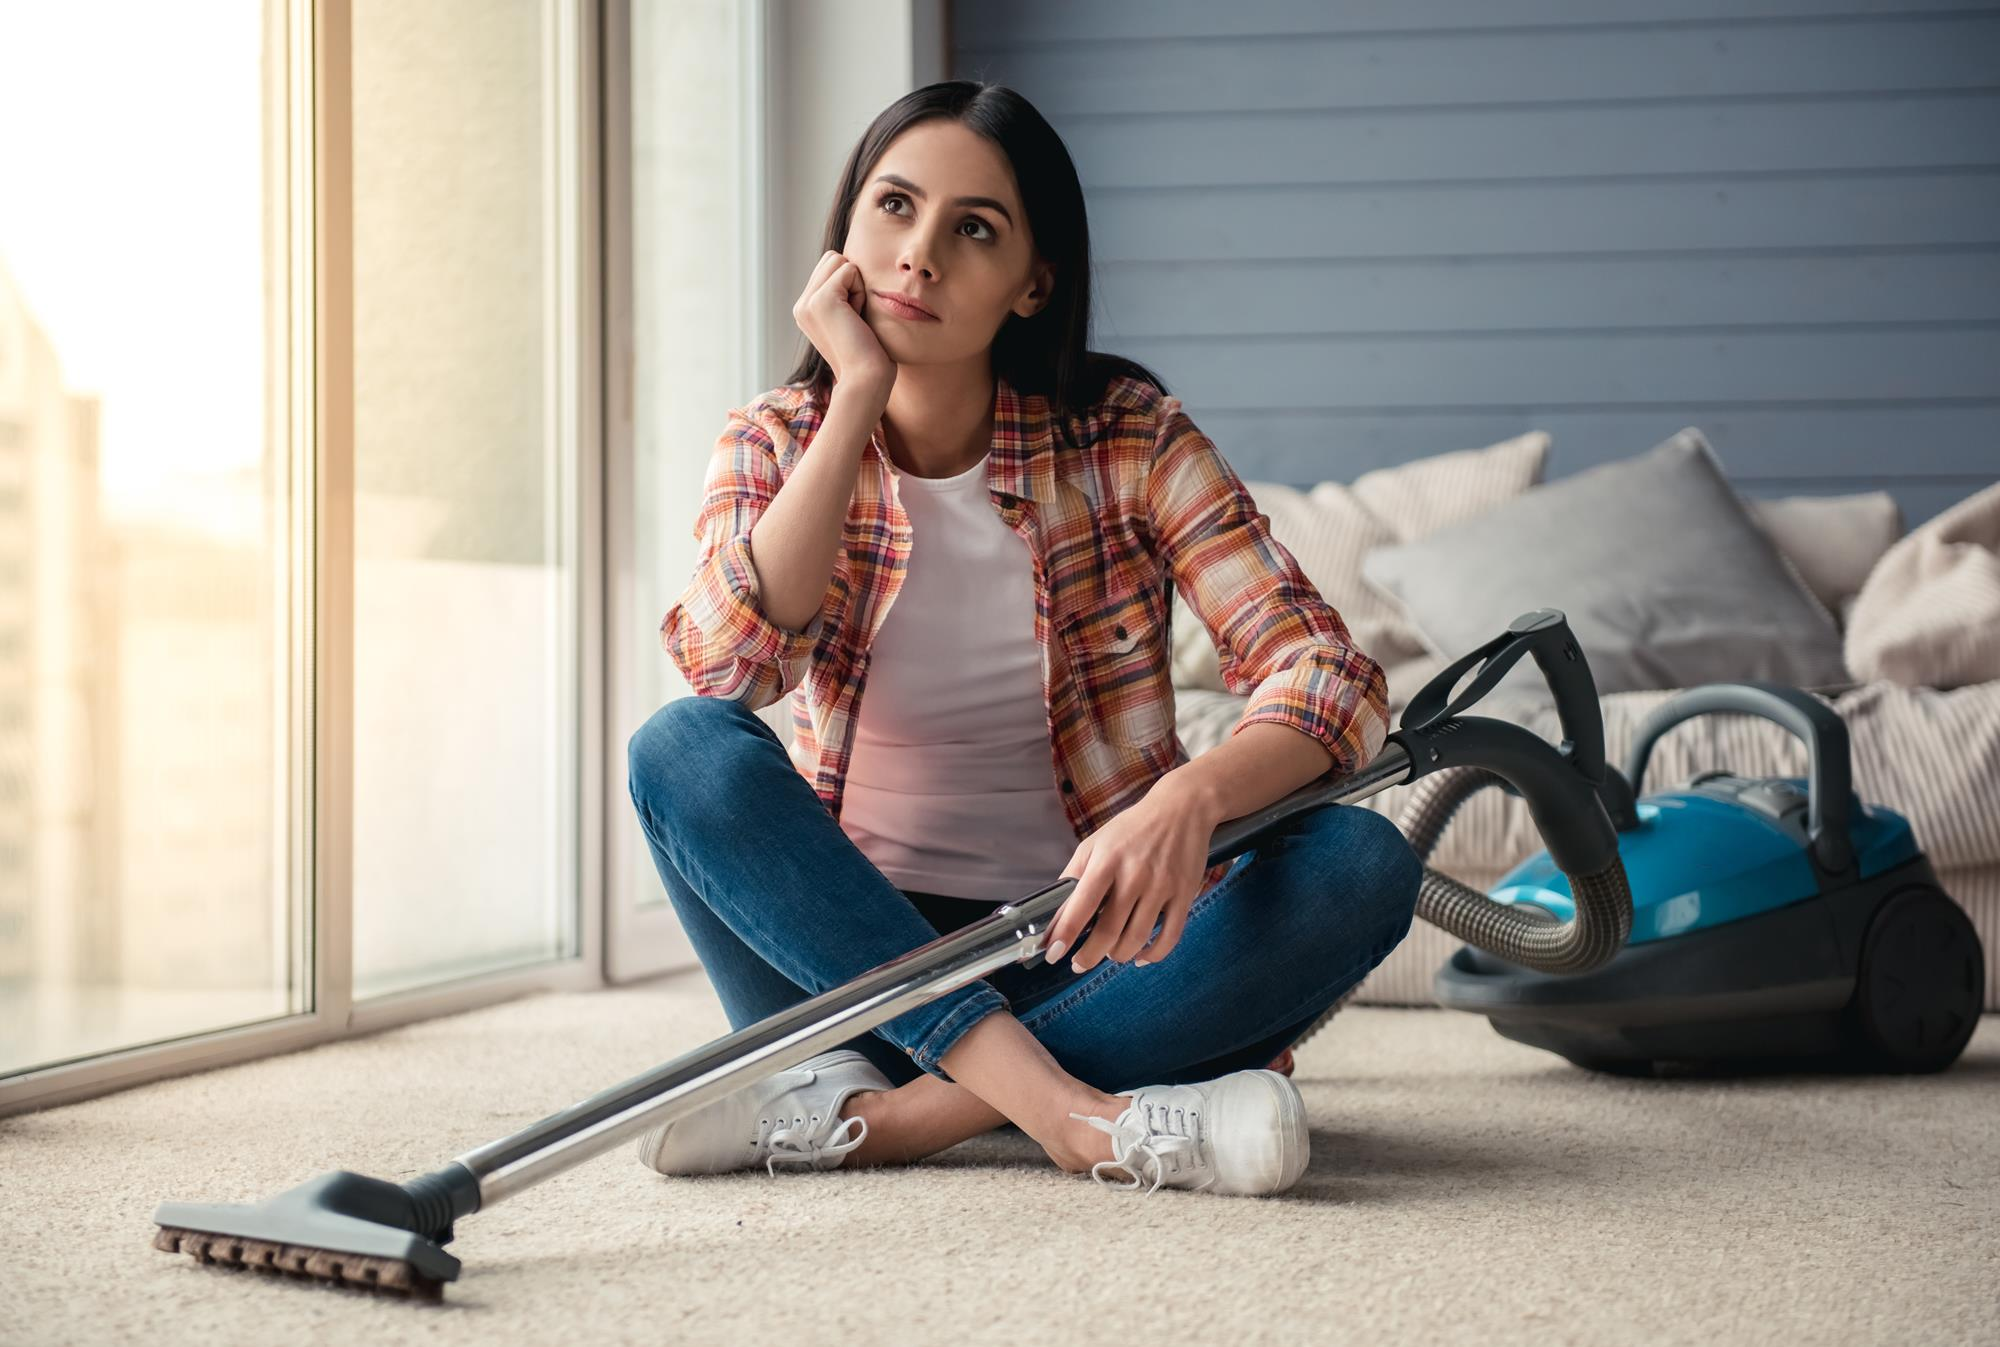 Professional Carpet Cleaning & Pest Control